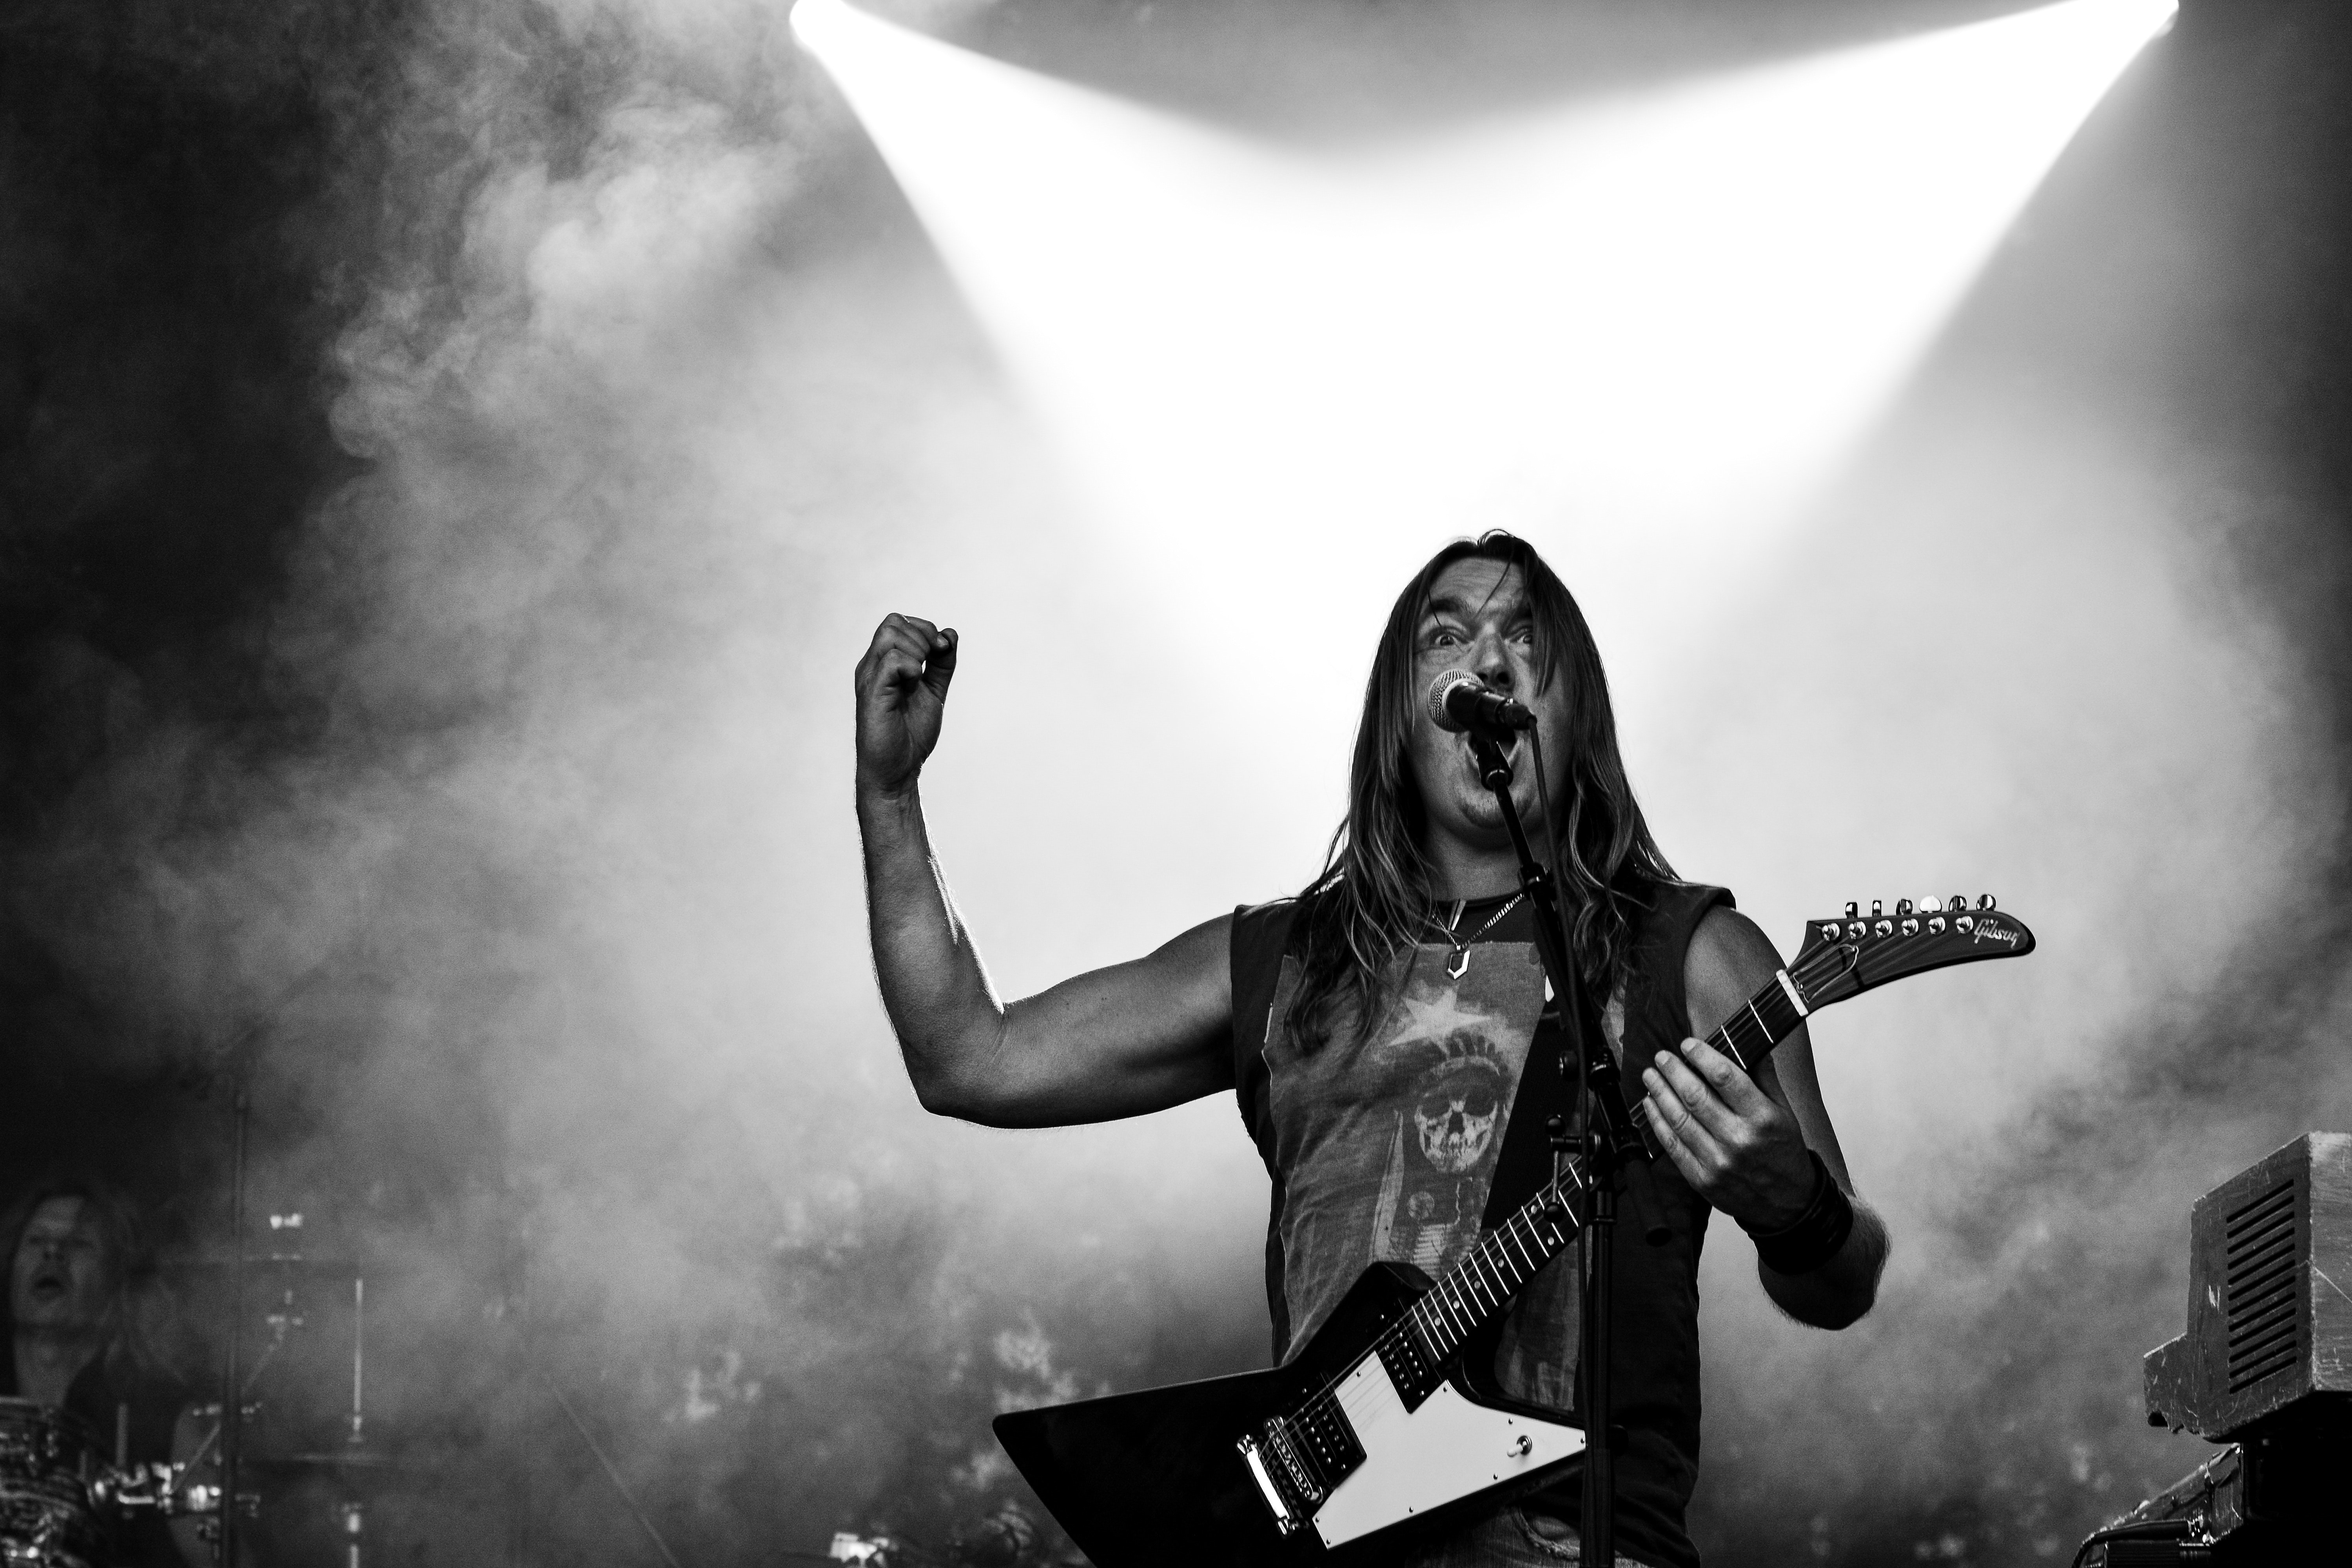 Vocalist Performing on Stage, Band, Black-and-white, Concert, Guitar, HQ Photo